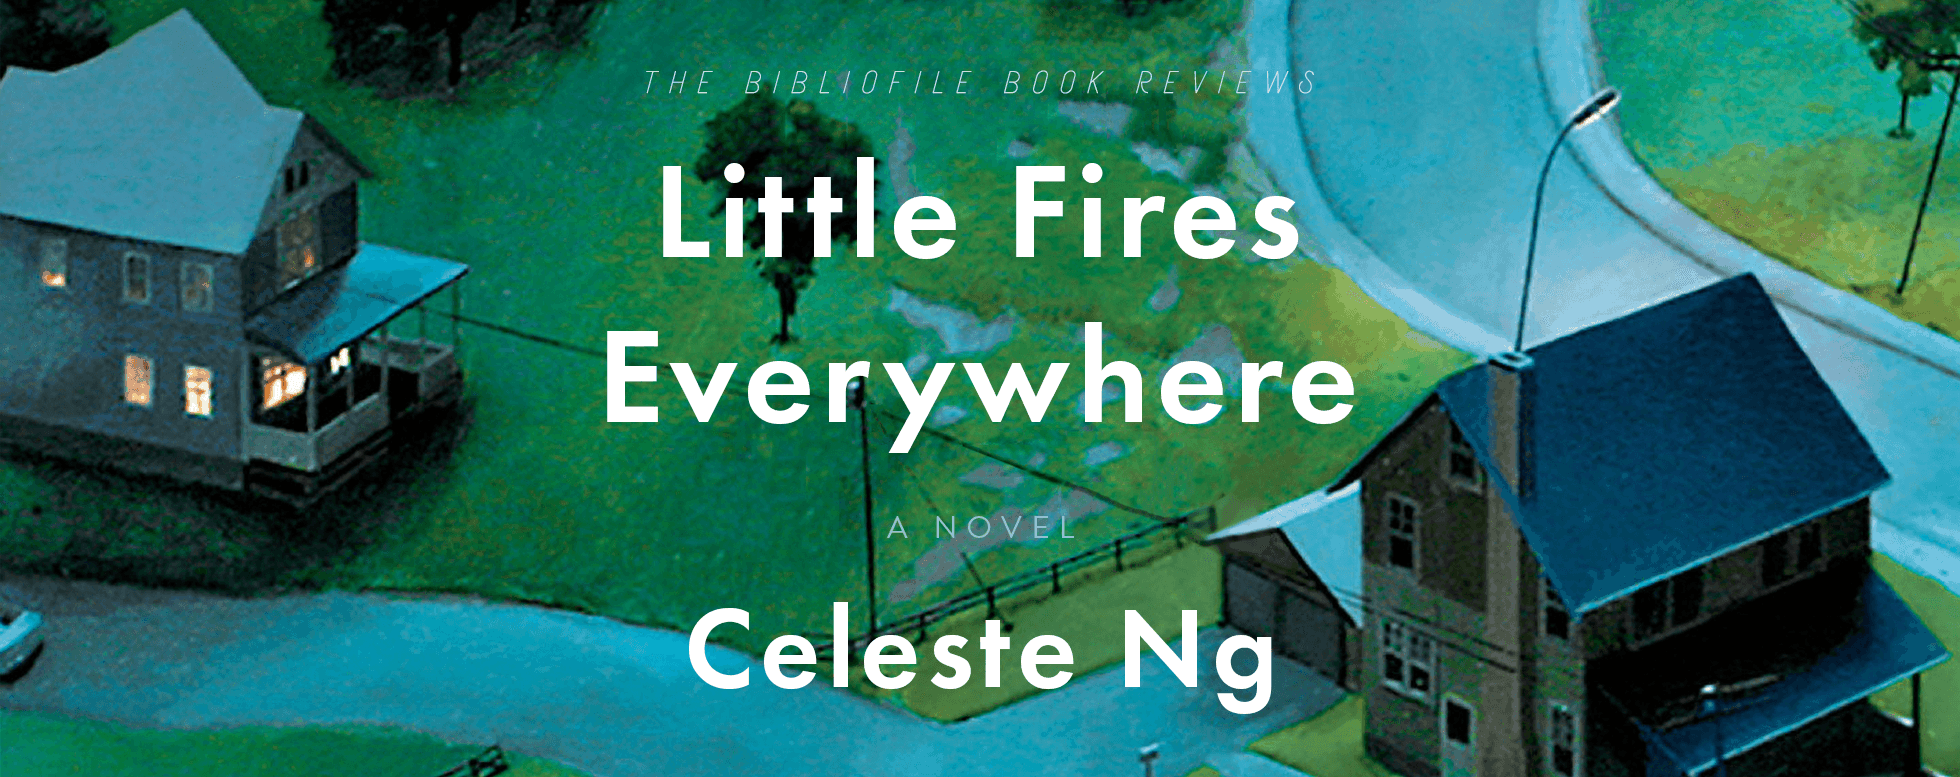 Little Fires Everywhere celeste ng review summary